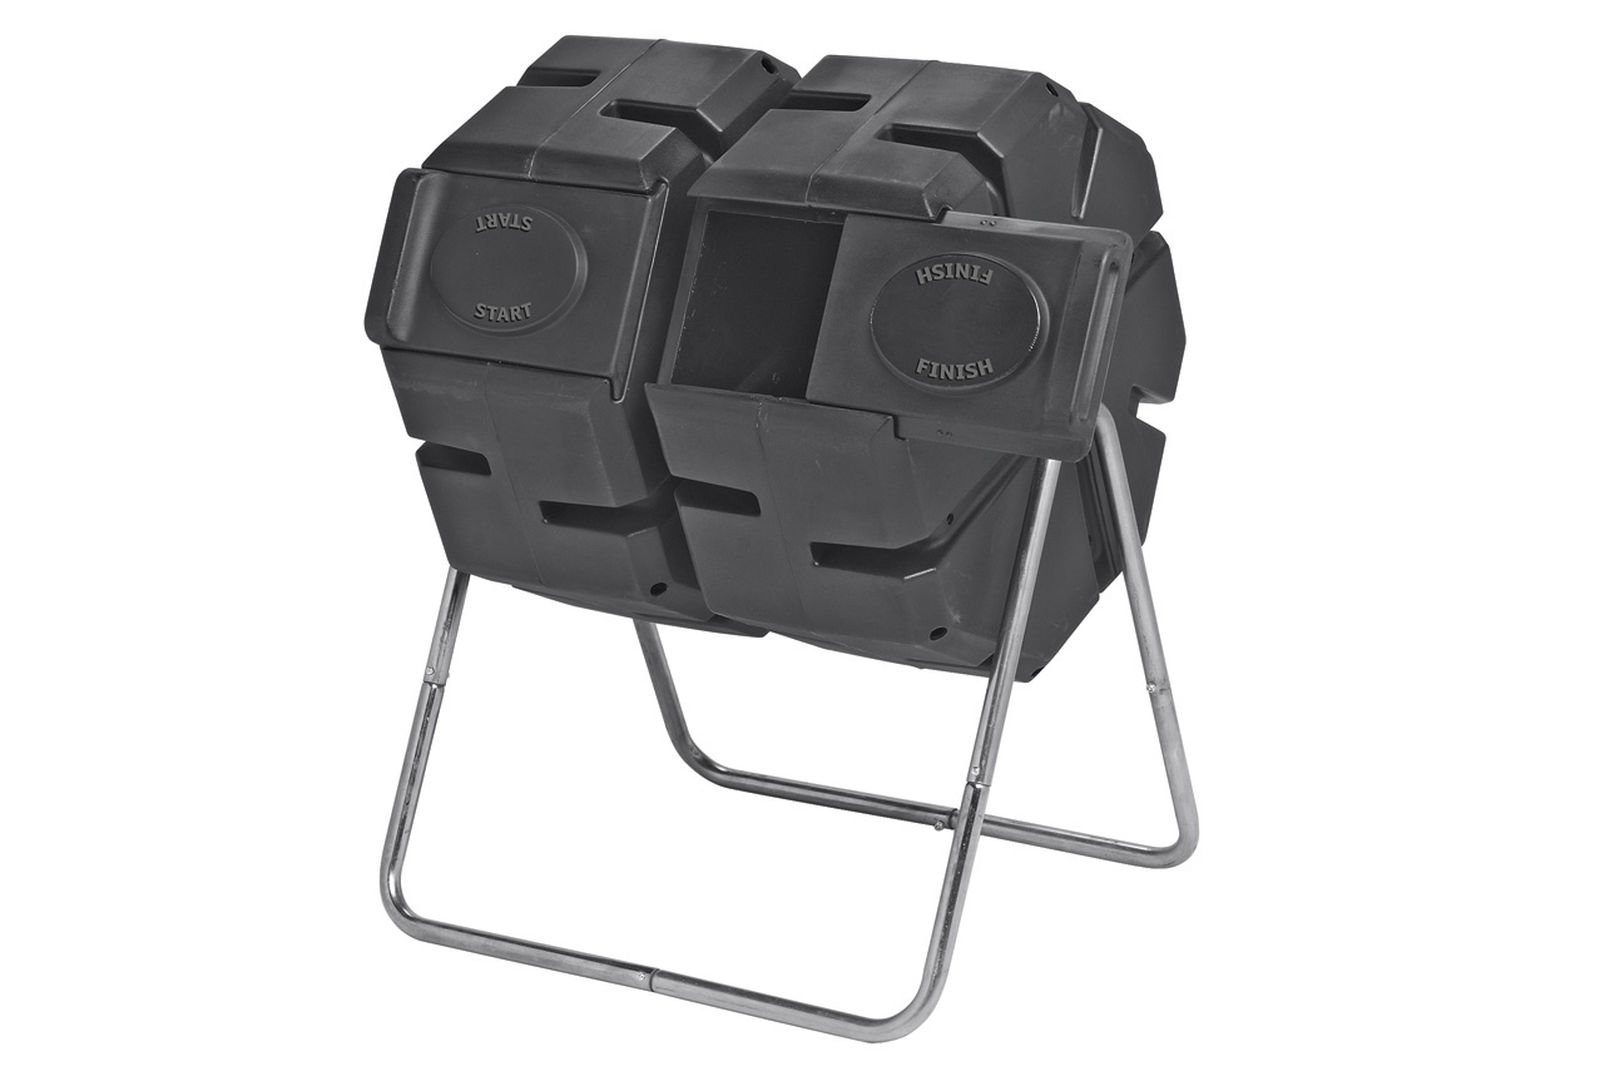 Dual Batch Compost Tumbler 100% Recycled Plastic Outdoor Compost Bin by Forest City Models